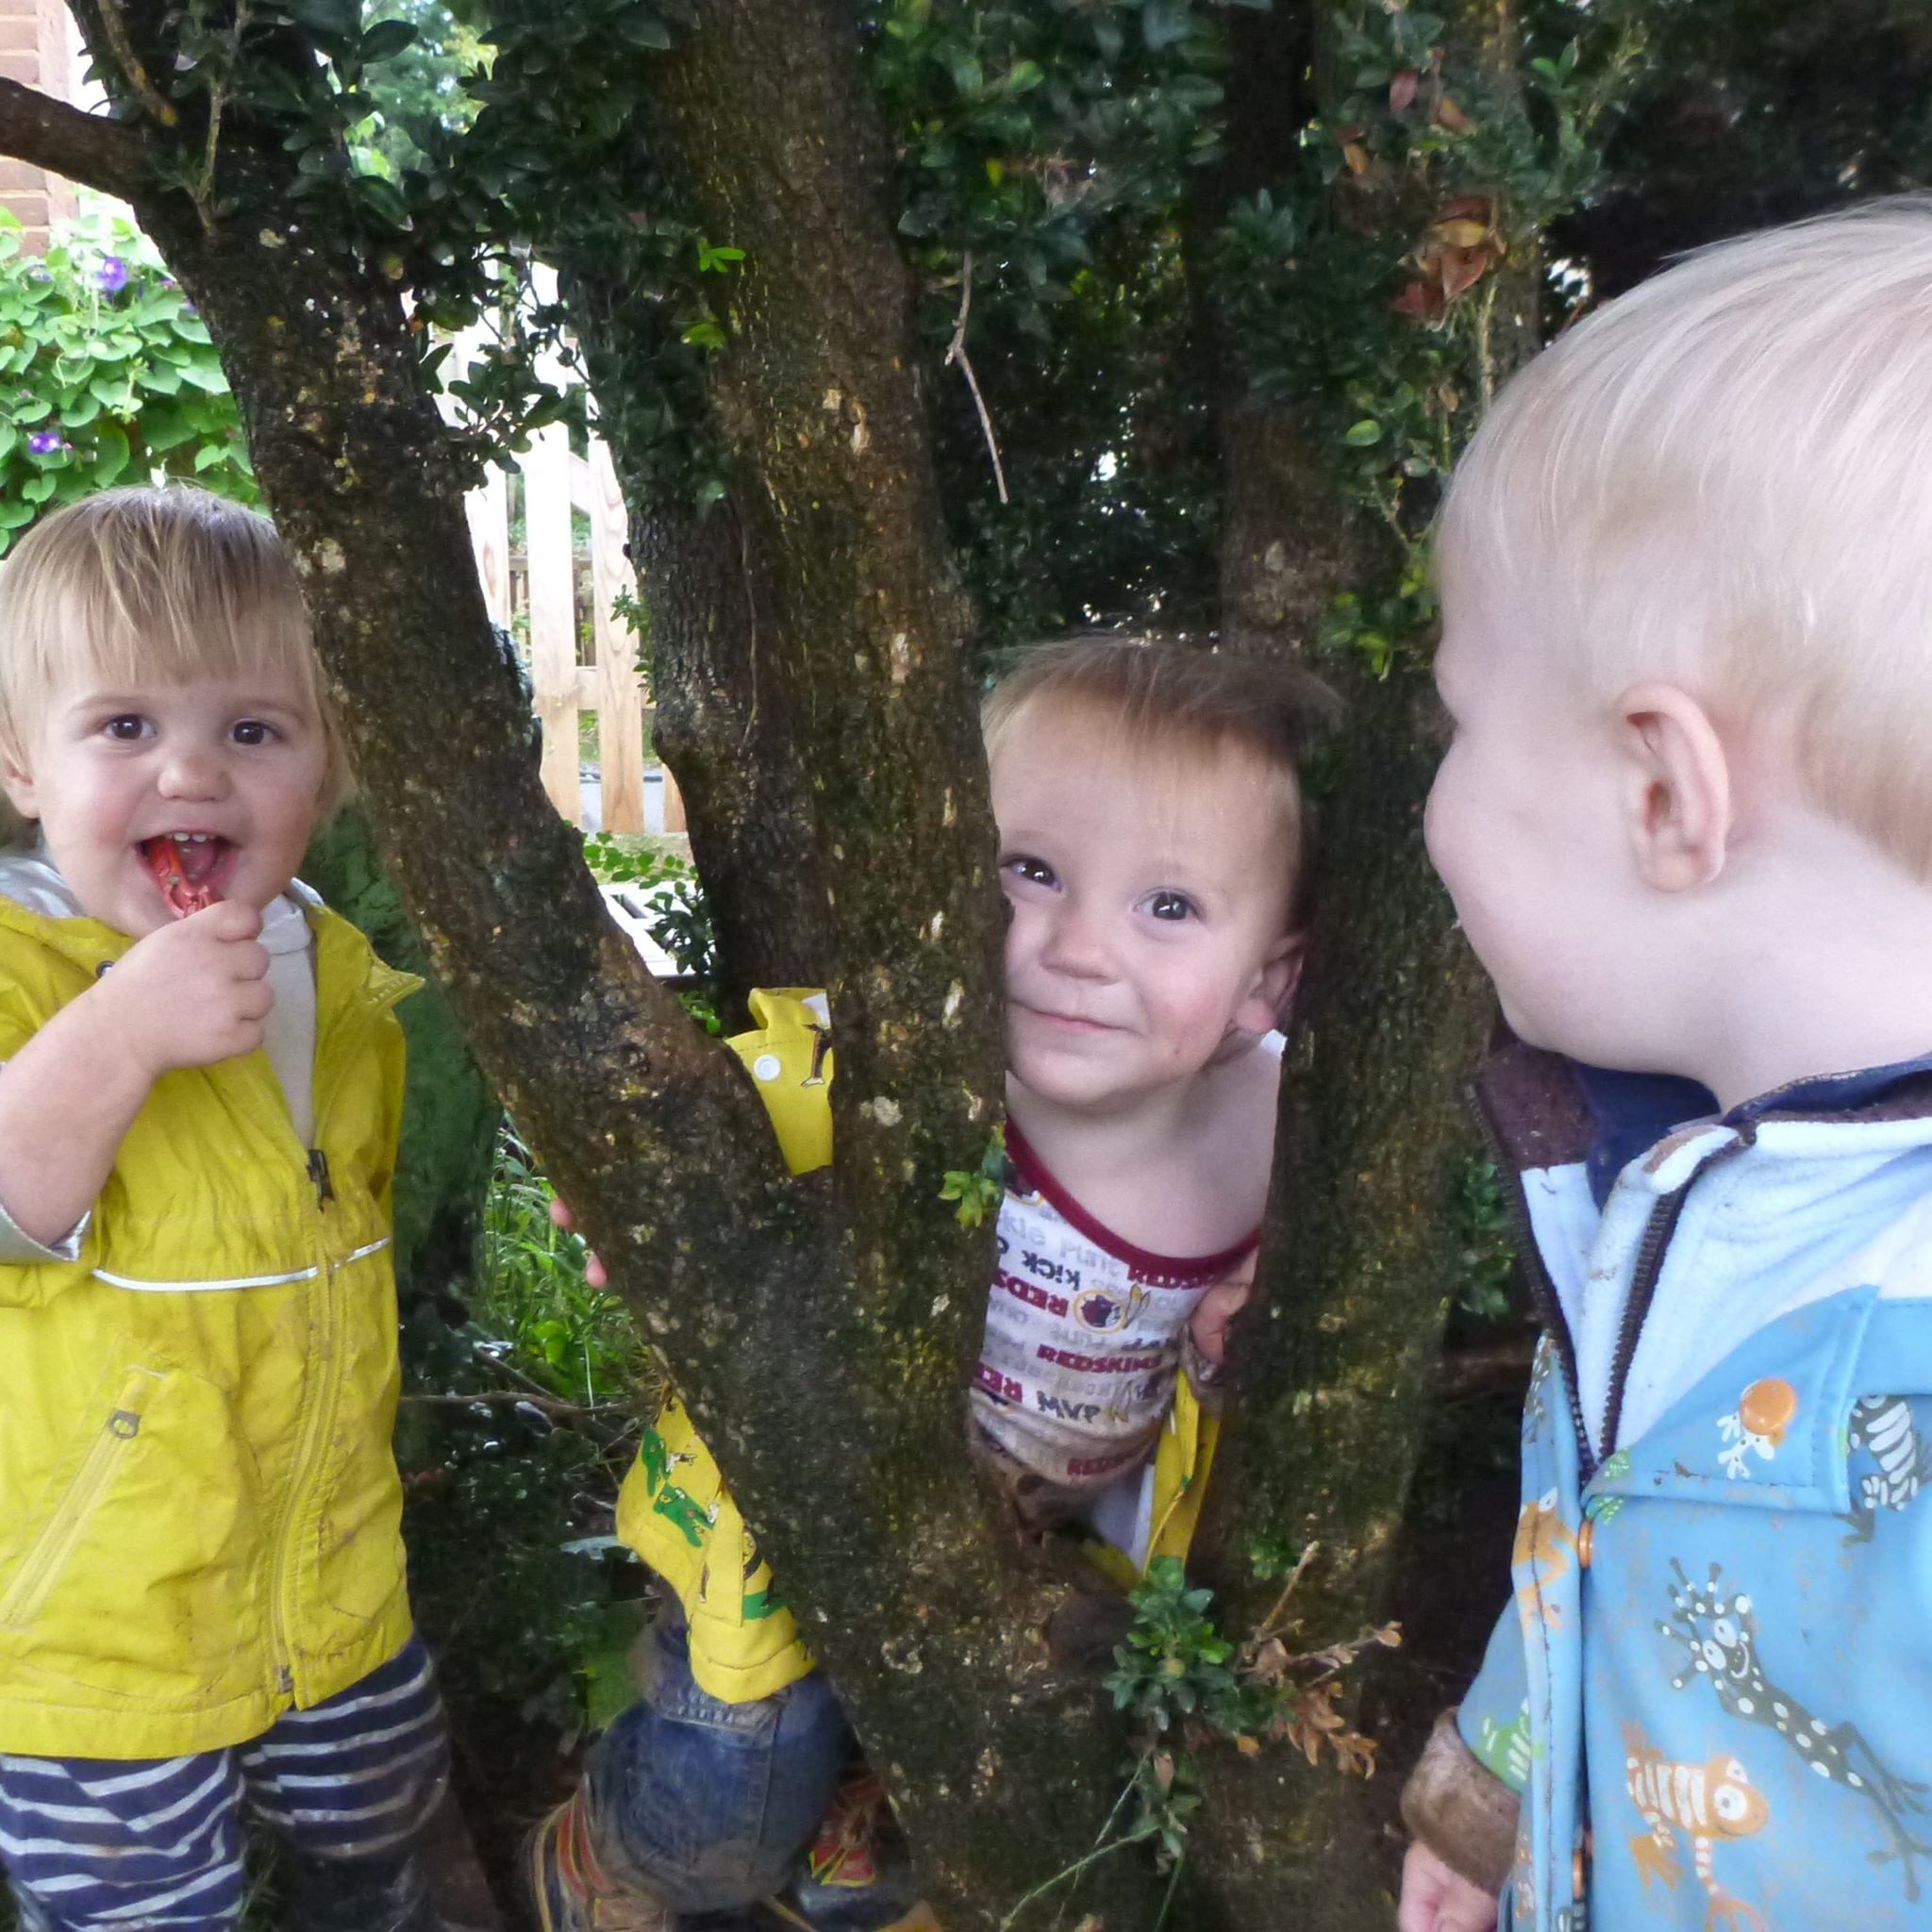 sq-how much time at school - social toddlers in reggio inspired preschool